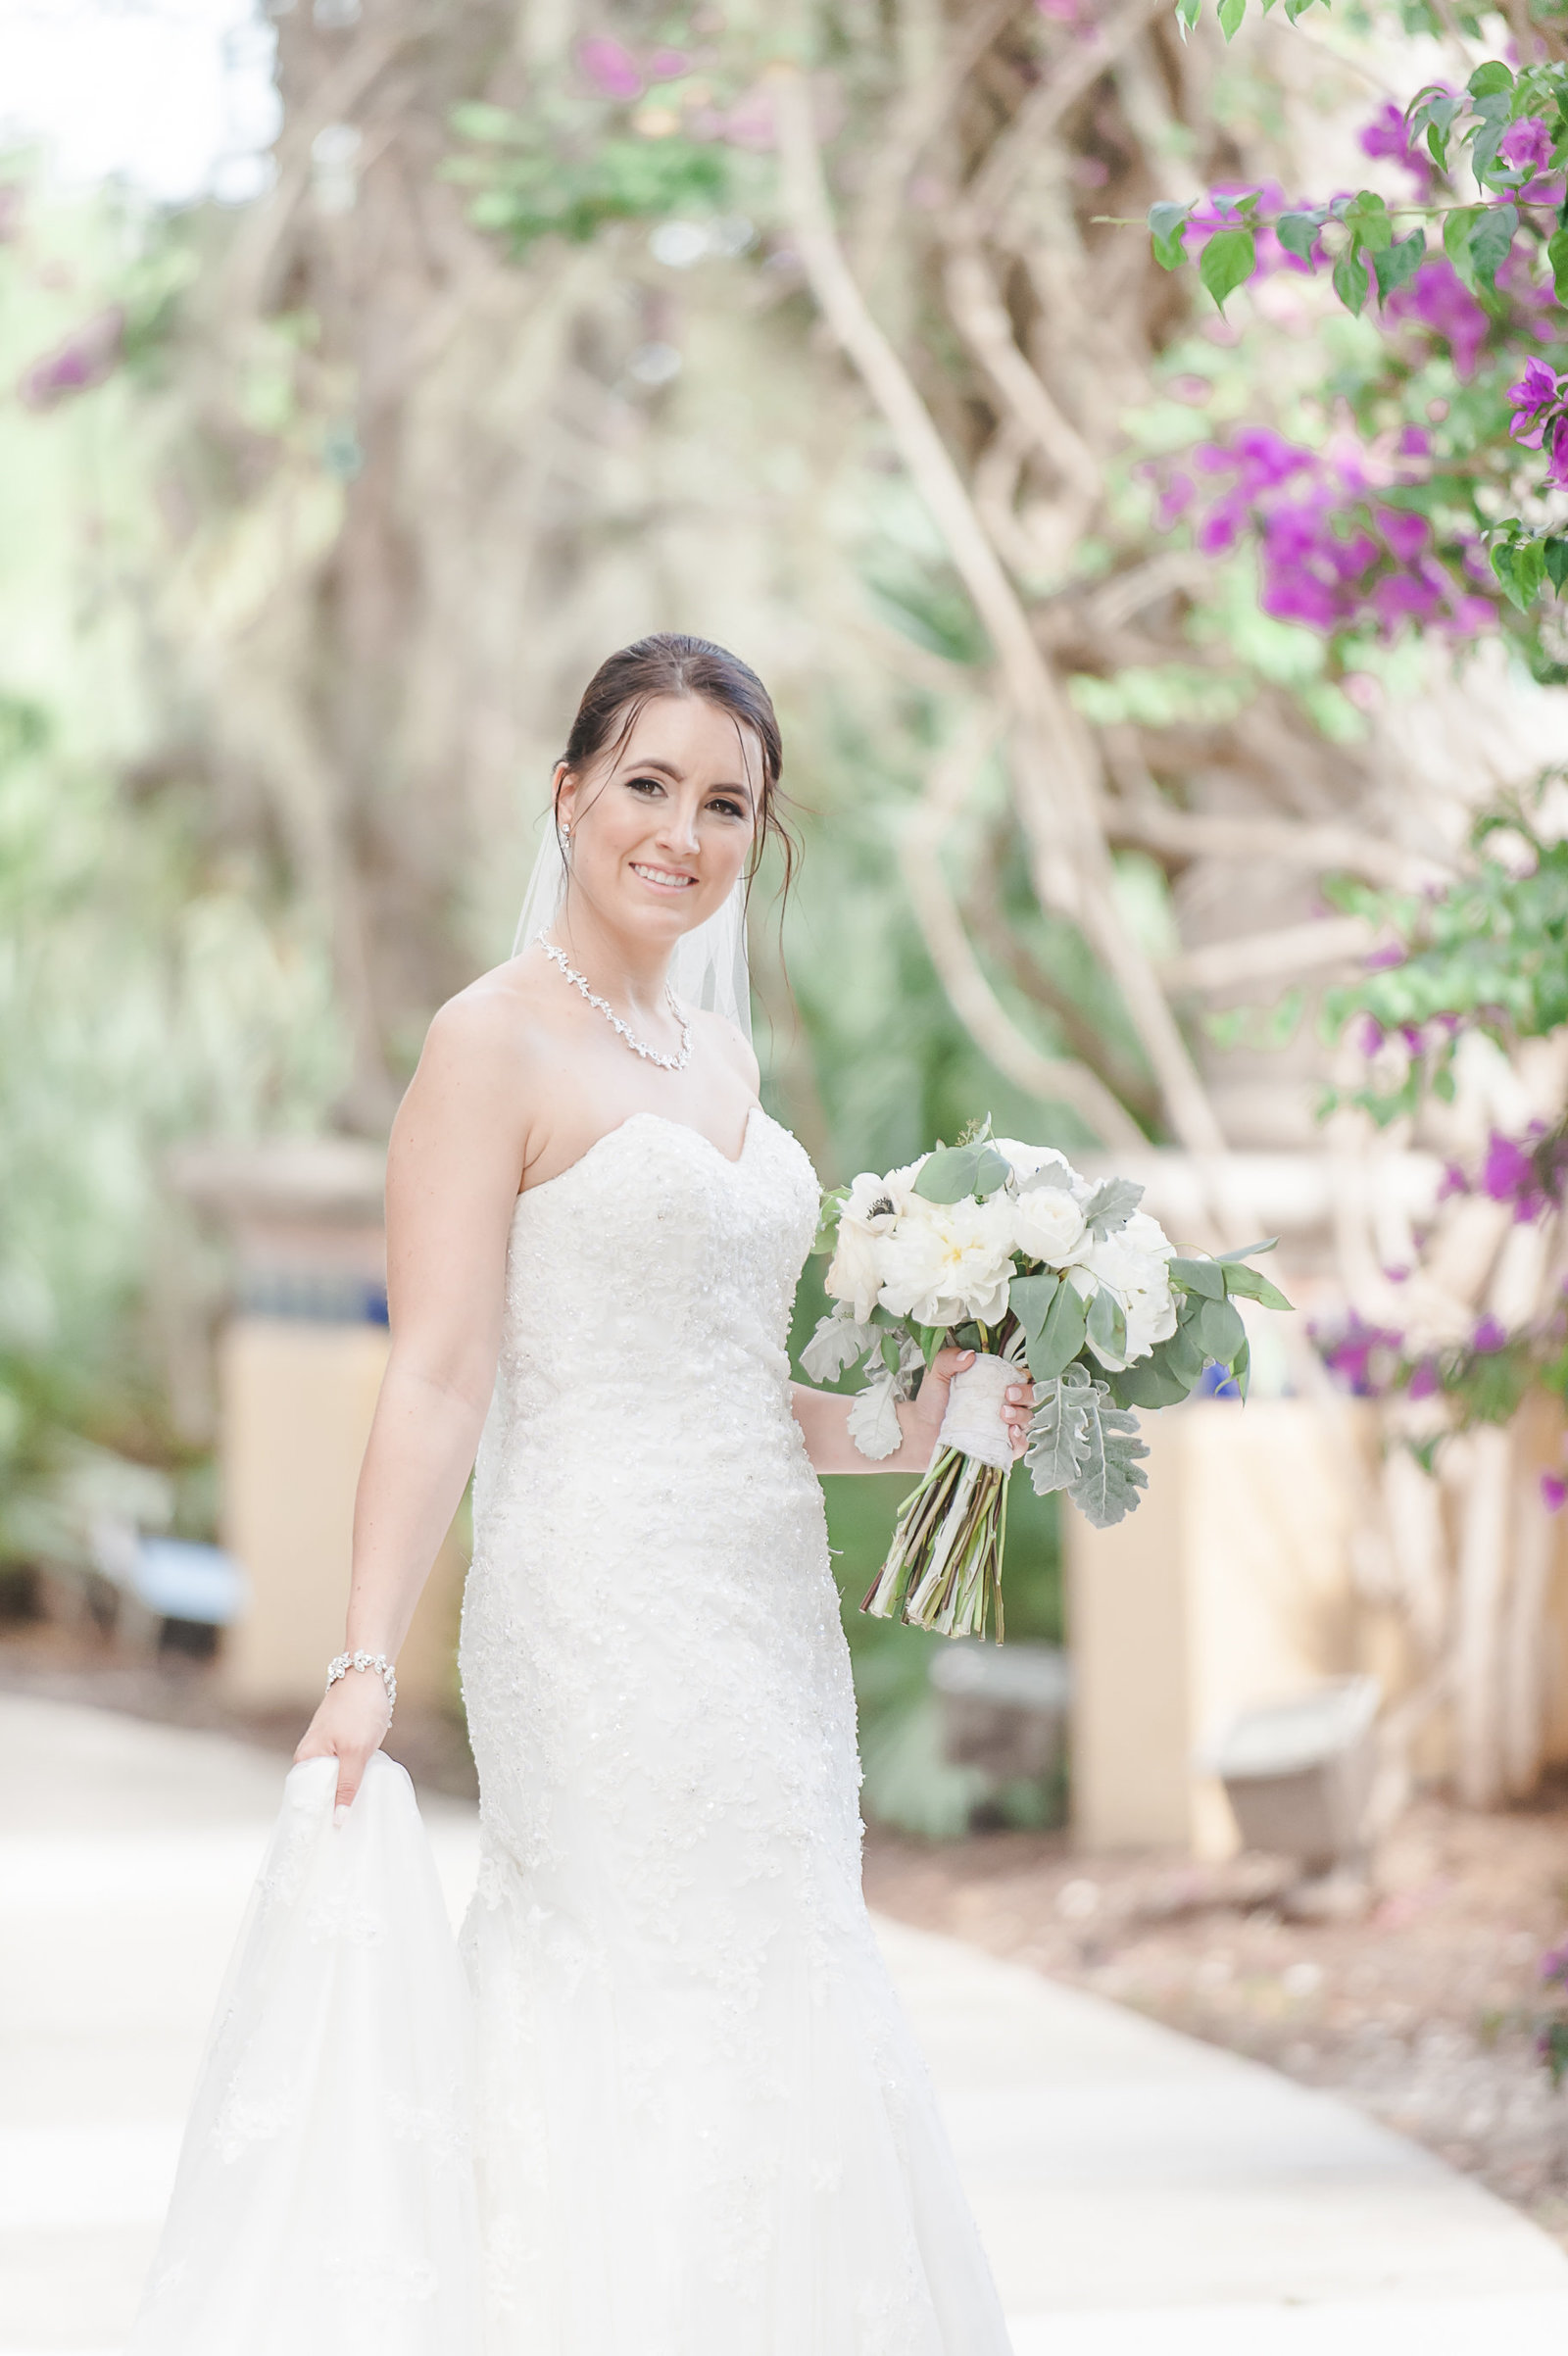 Bride - Country Club at Mirasol Wedding - Palm Beach Wedding Photography by Palm Beach Photography, Inc.